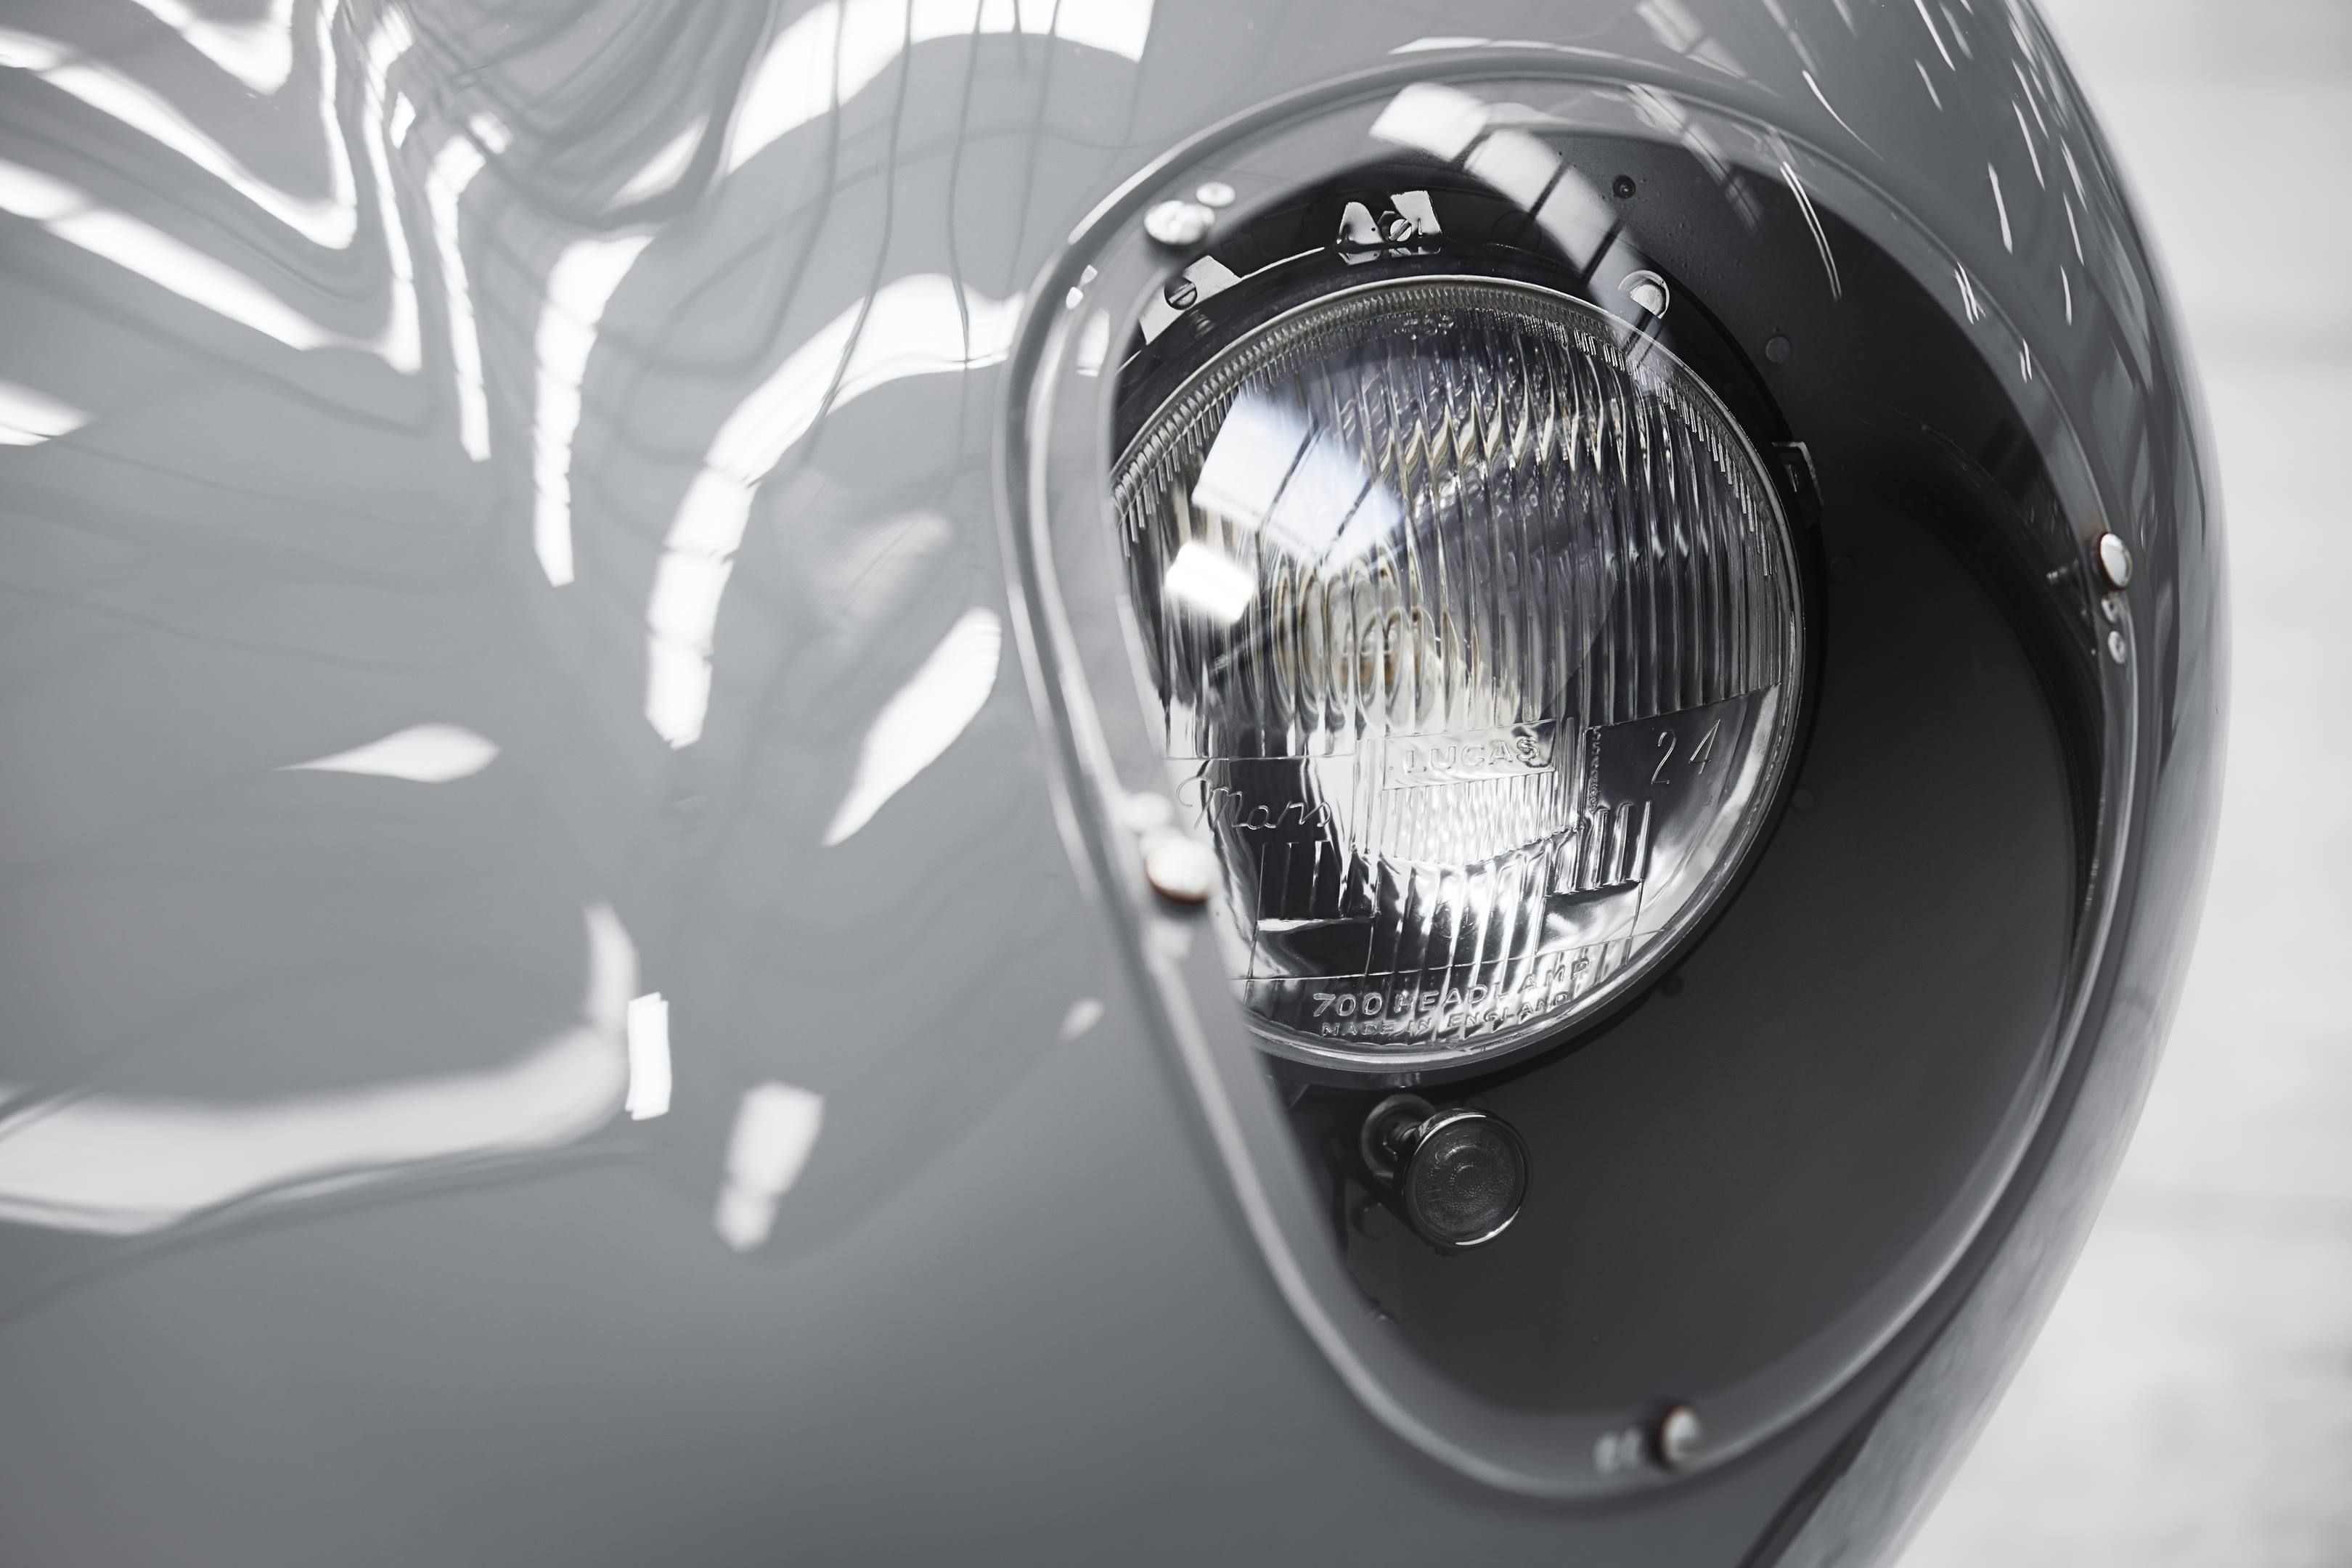 Jaguar D-type headlight